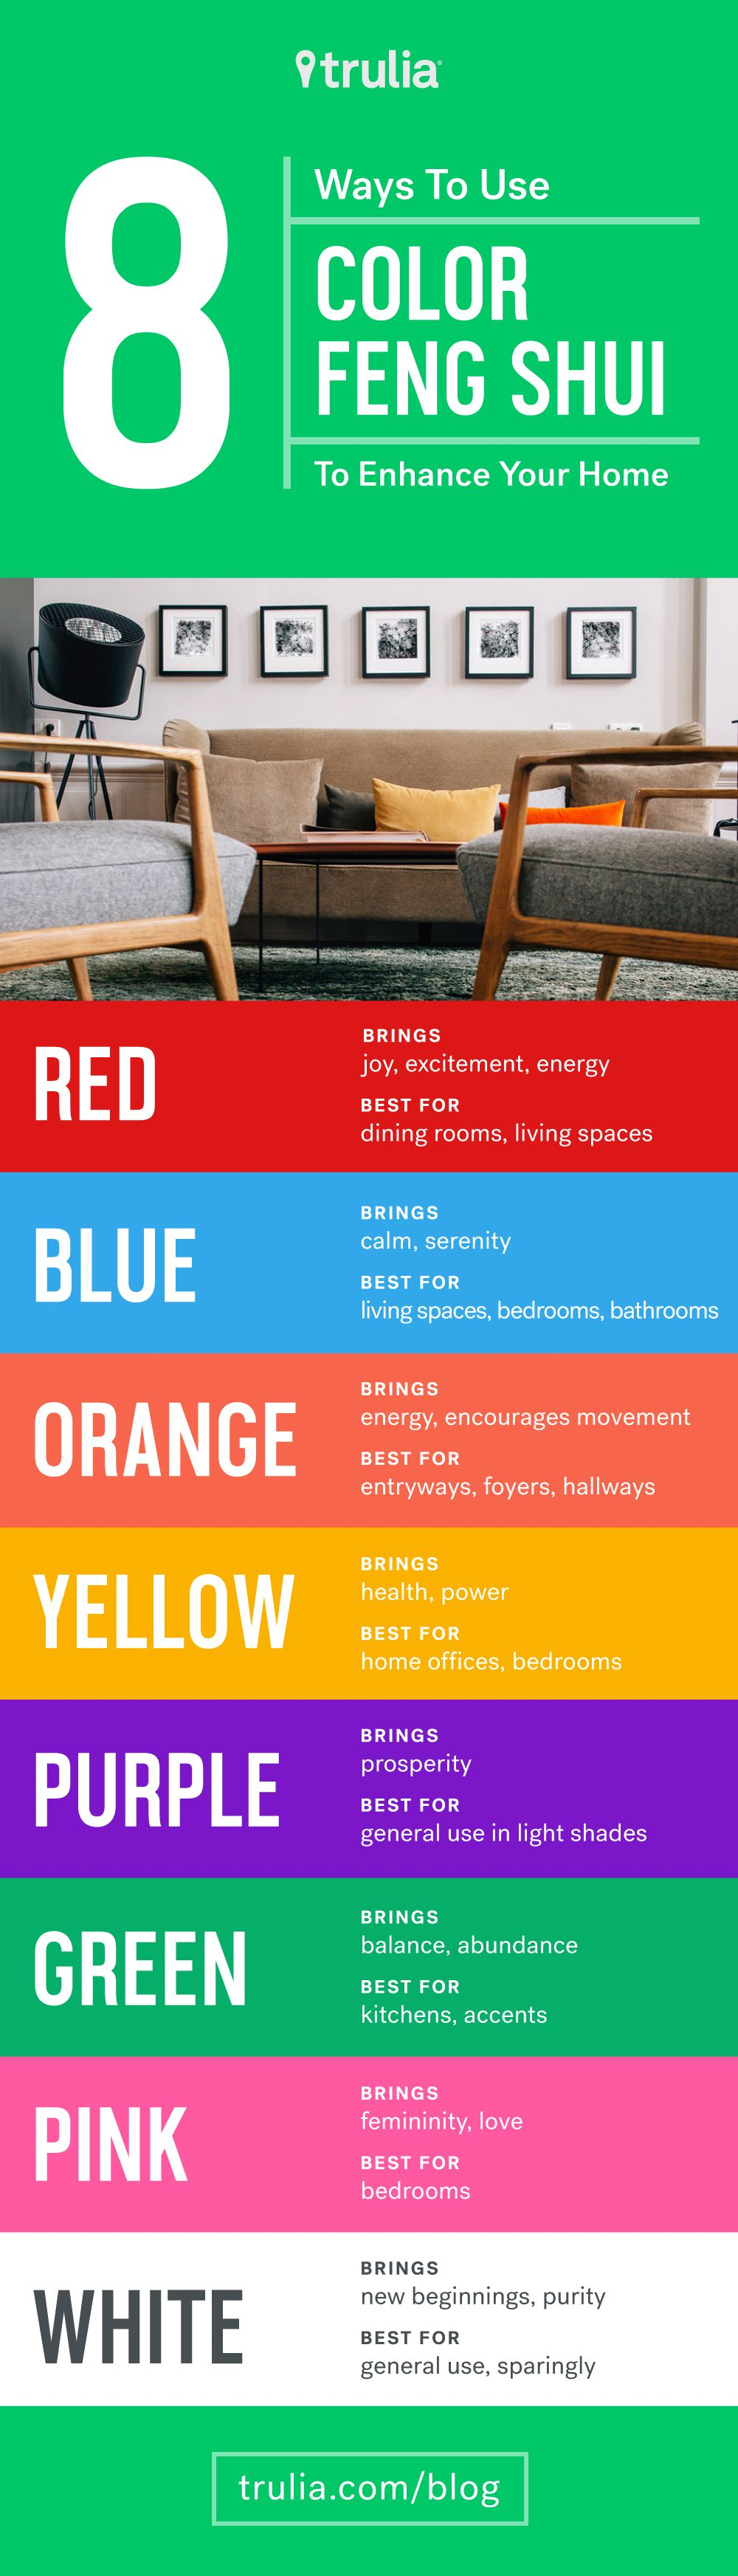 8 reasons to use color feng shui to enhance your home life at home